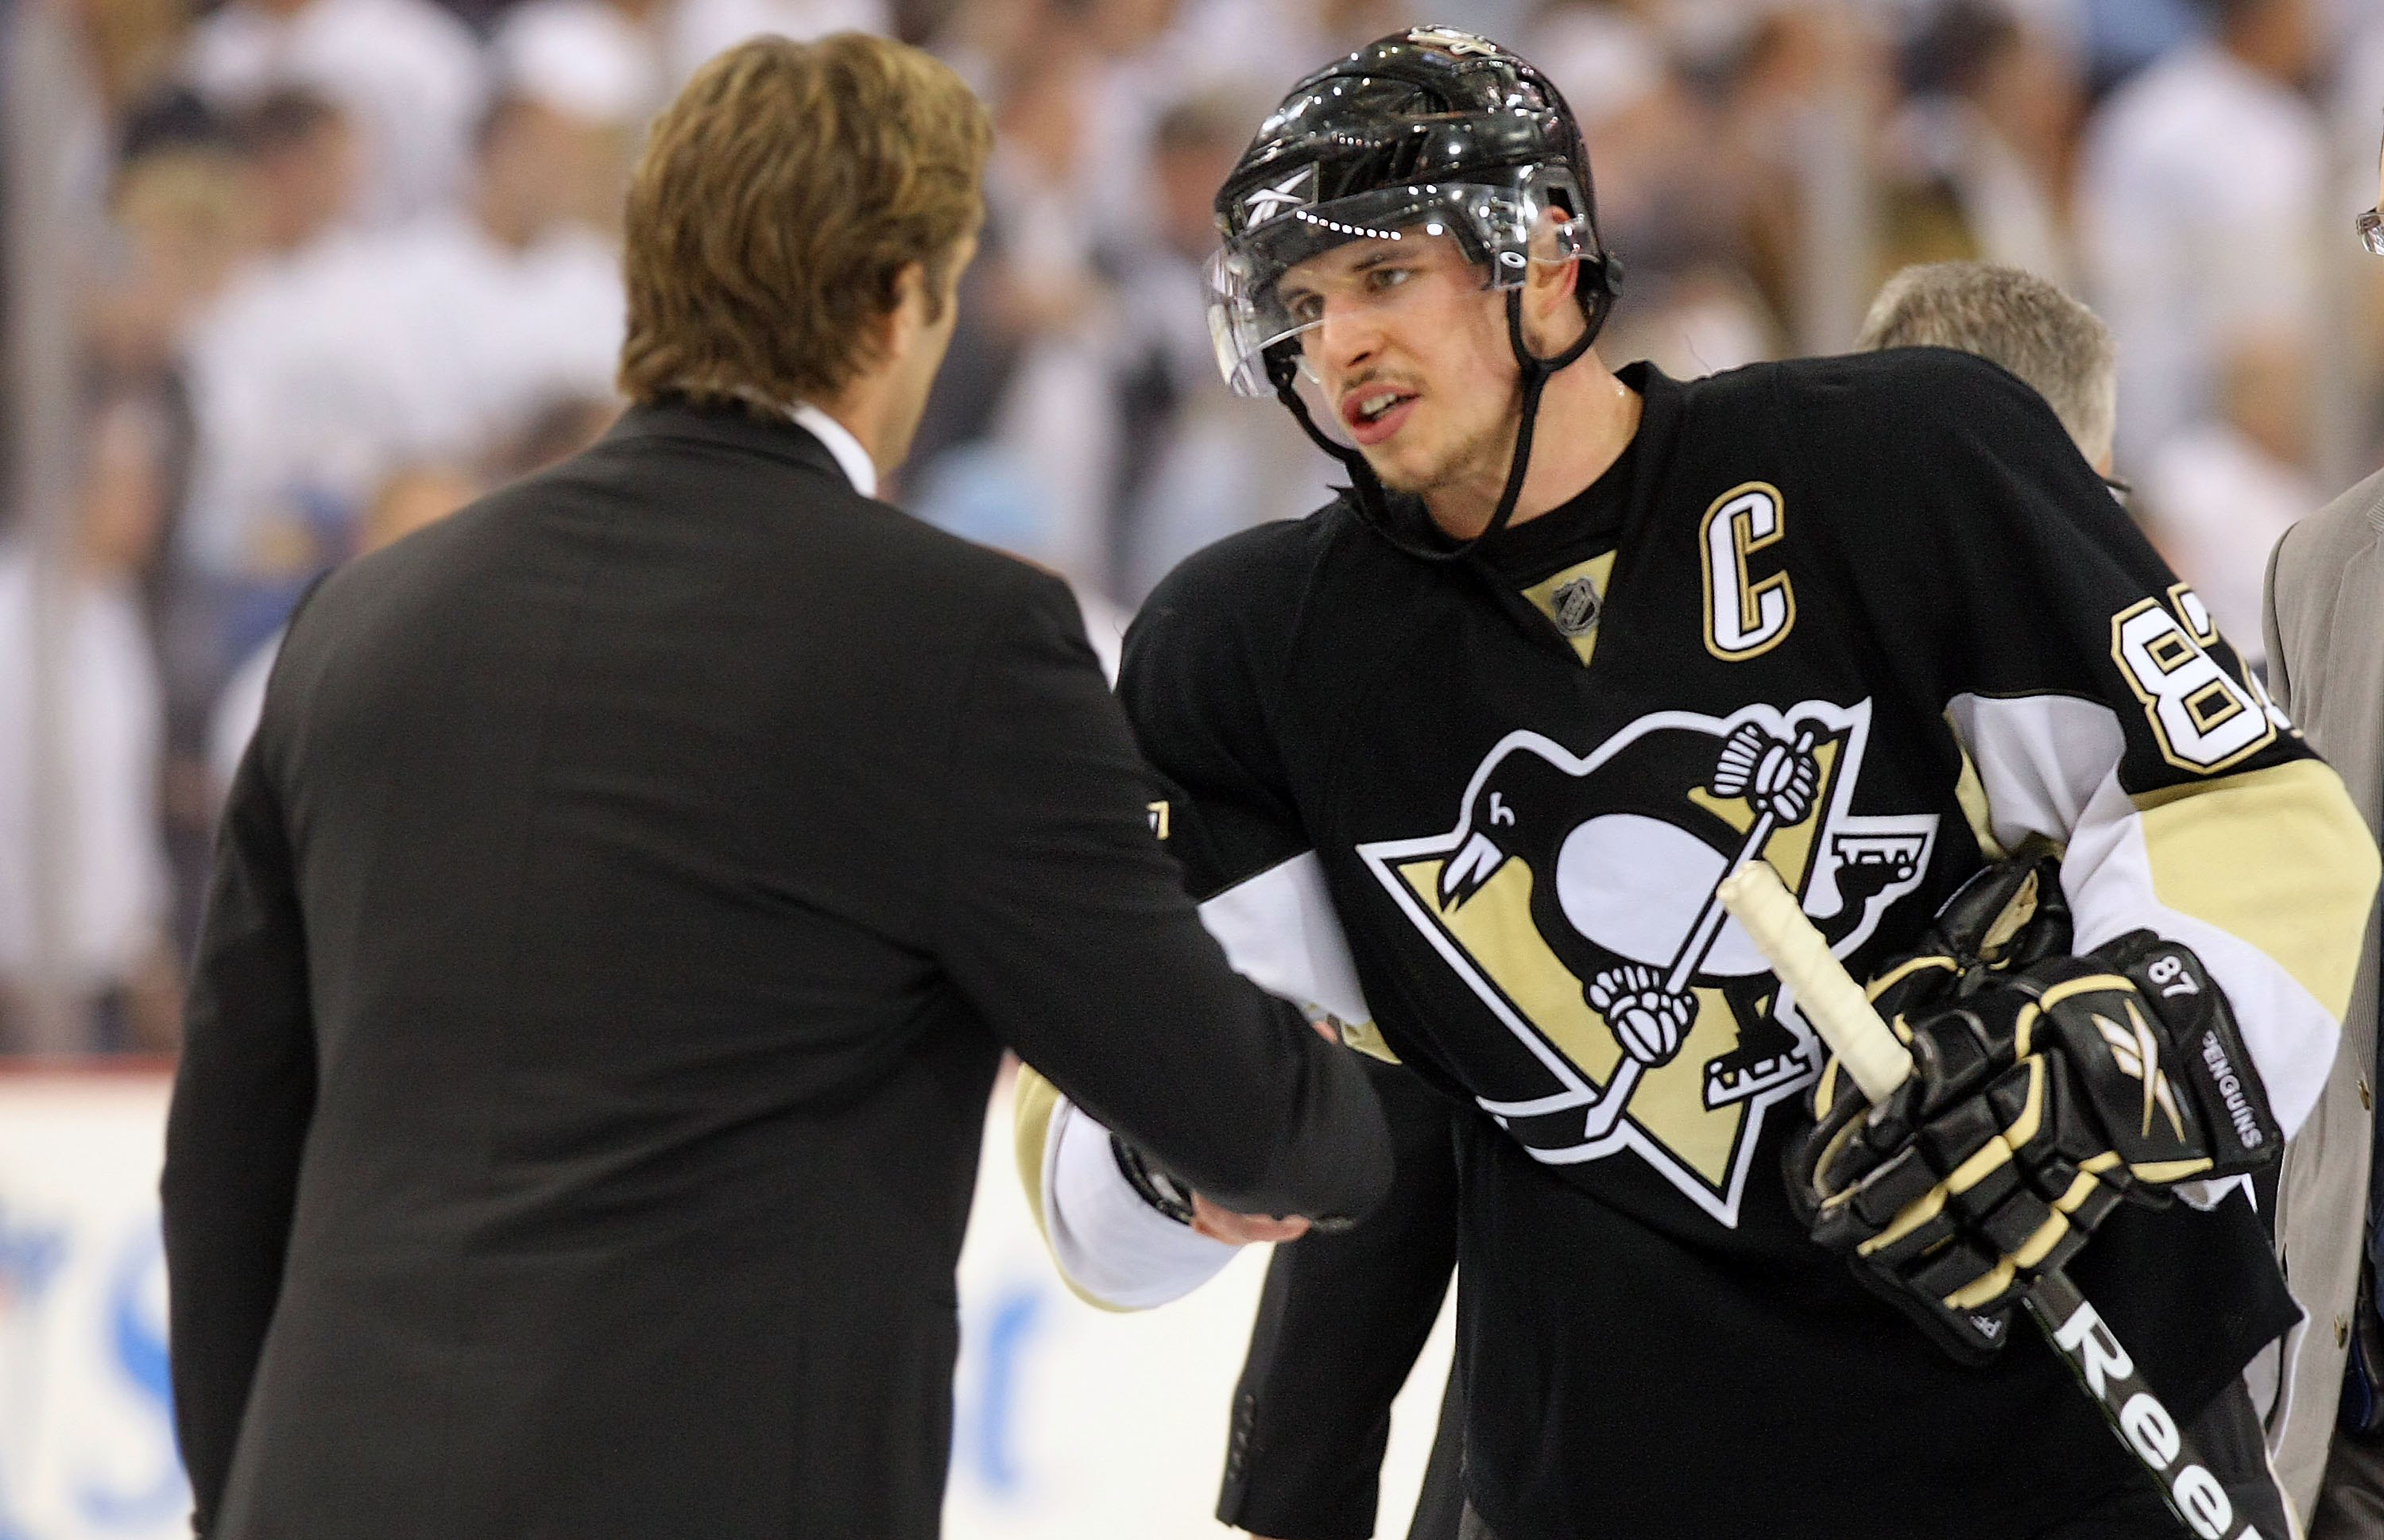 e3b3f264e7a Although the official fifth anniversary of Sidney Crosby s draft day has  passed